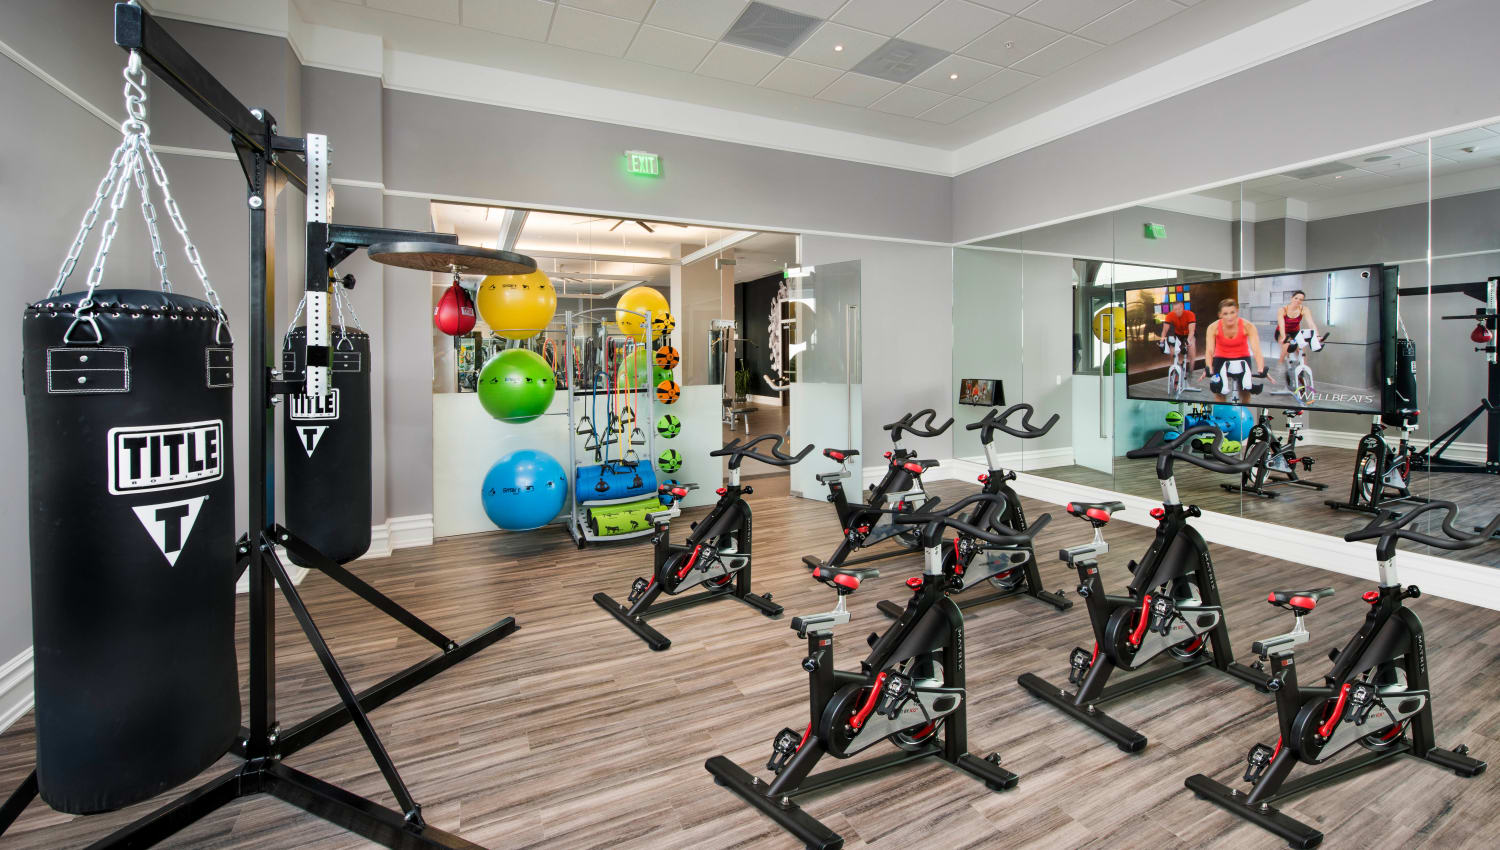 Spin class room in the fitness center at Olympus Harbour Island in Tampa, Florida